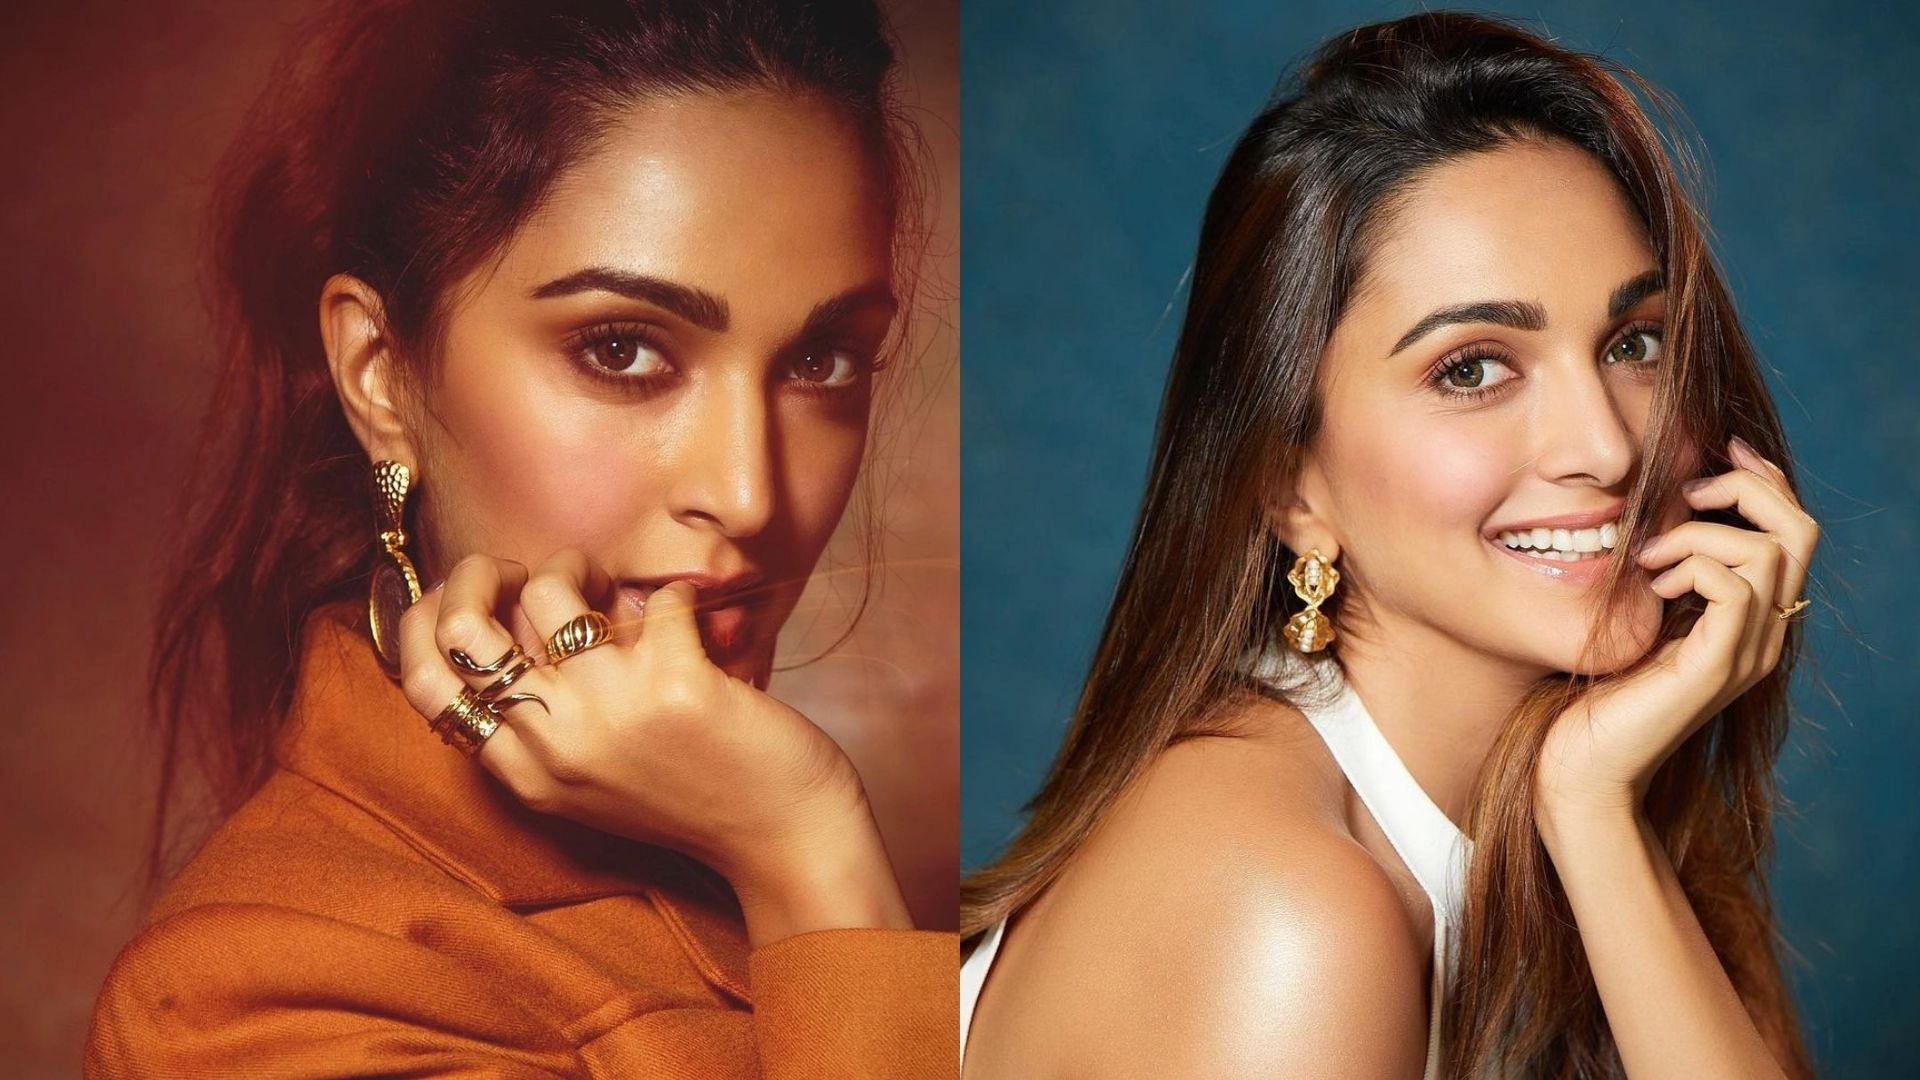 Kiara Advani Says, 'Had To Learn How To Be Thick Skinned'; Makes Shocking Revelations About Her B-Town Journey